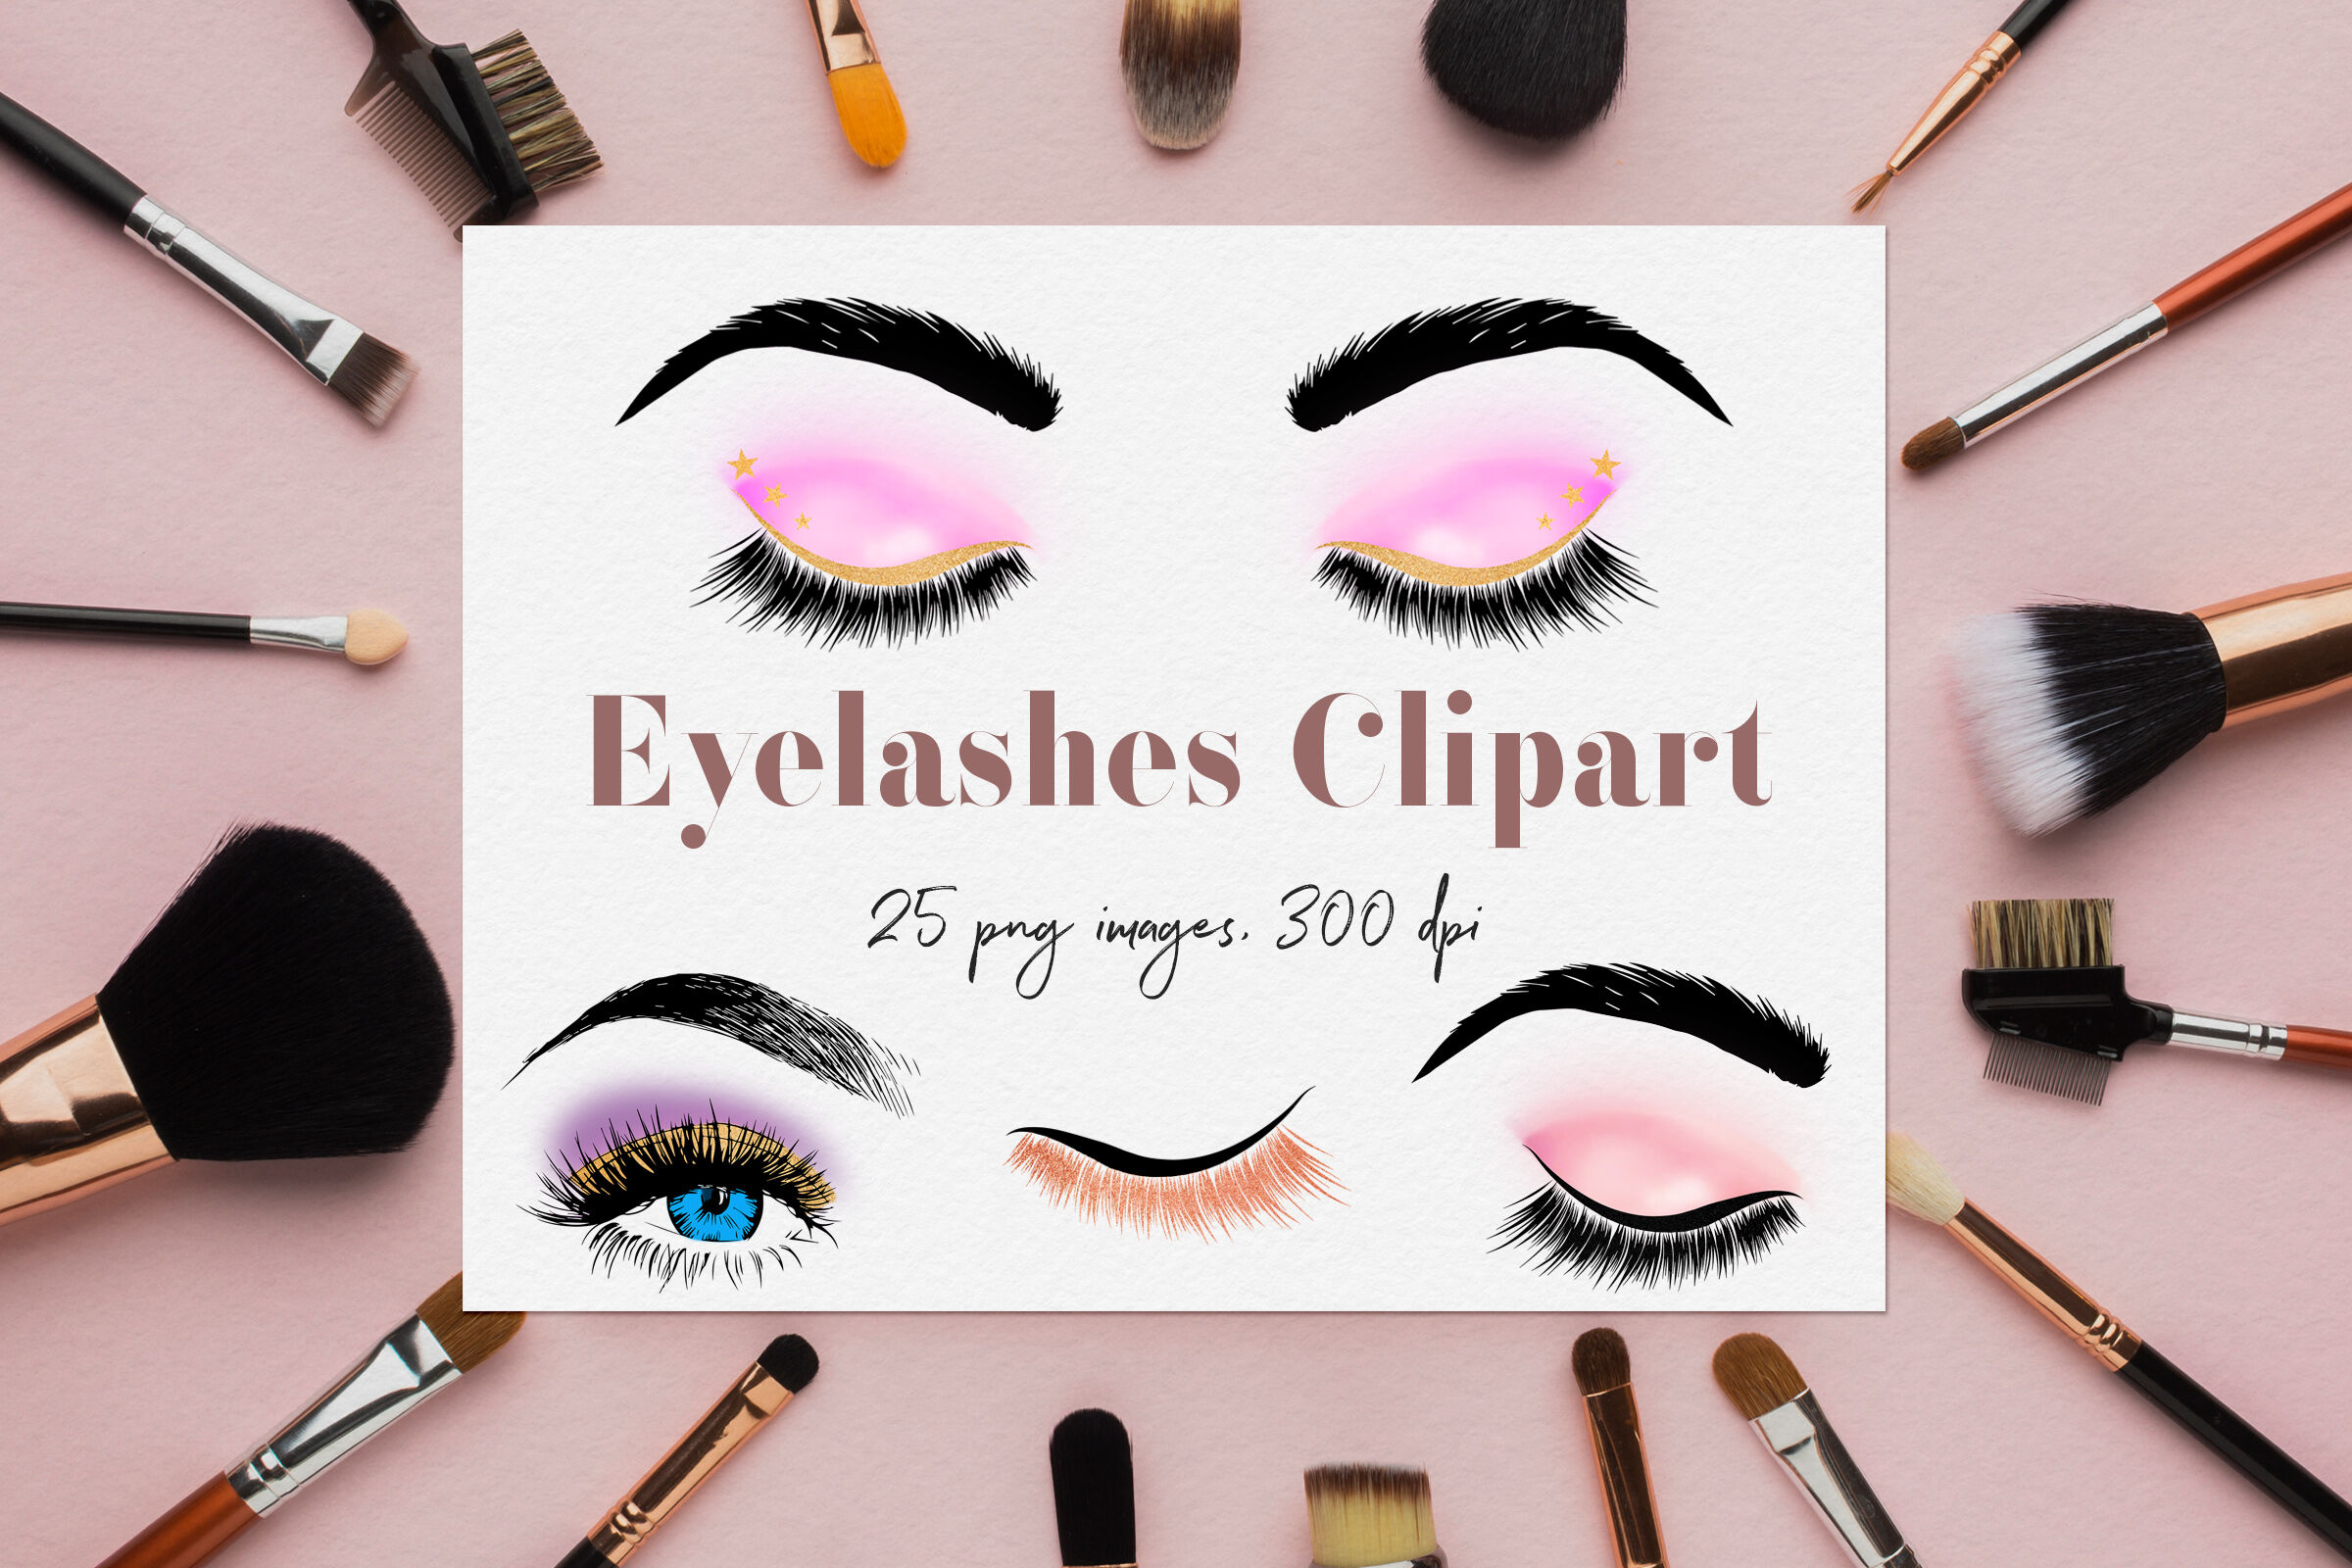 Eyelashes Clipart Glam Eyes By North Sea Studio Thehungryjpeg Com